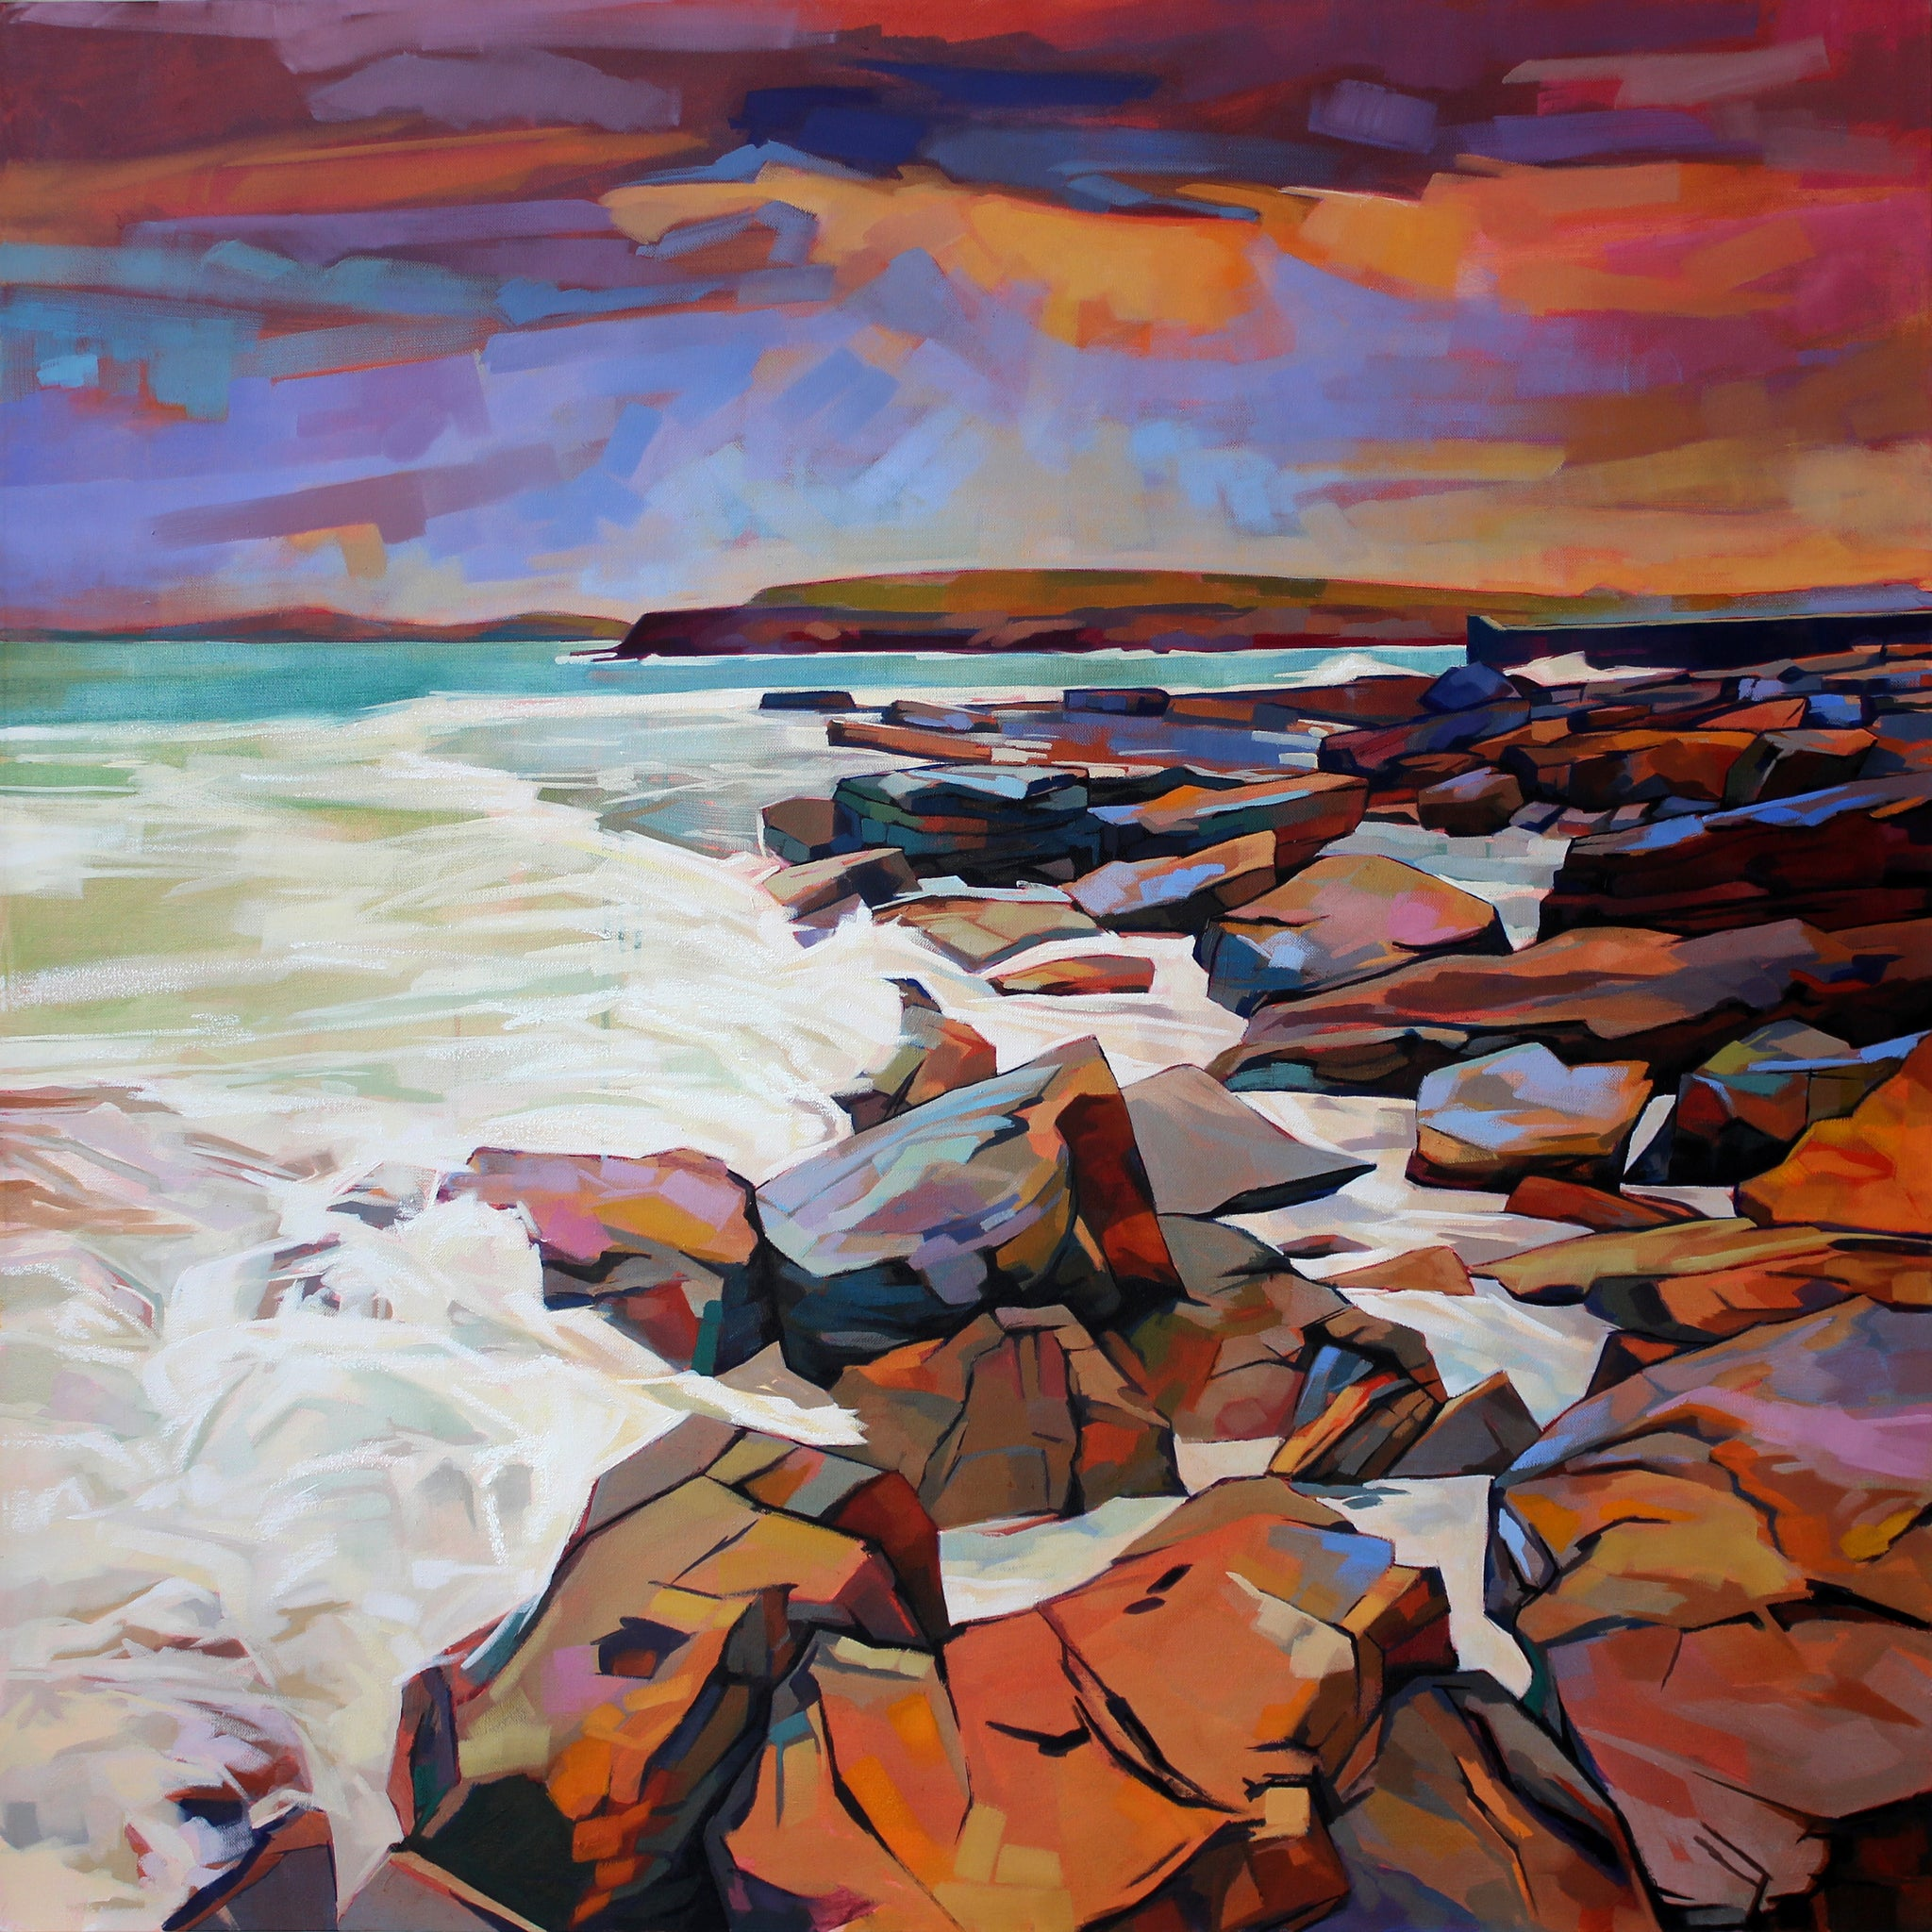 Rocks At Creevy - Contemporary art from Ireland. Paintings & prints by Irish seascape & landscape artist Kevin Lowery.